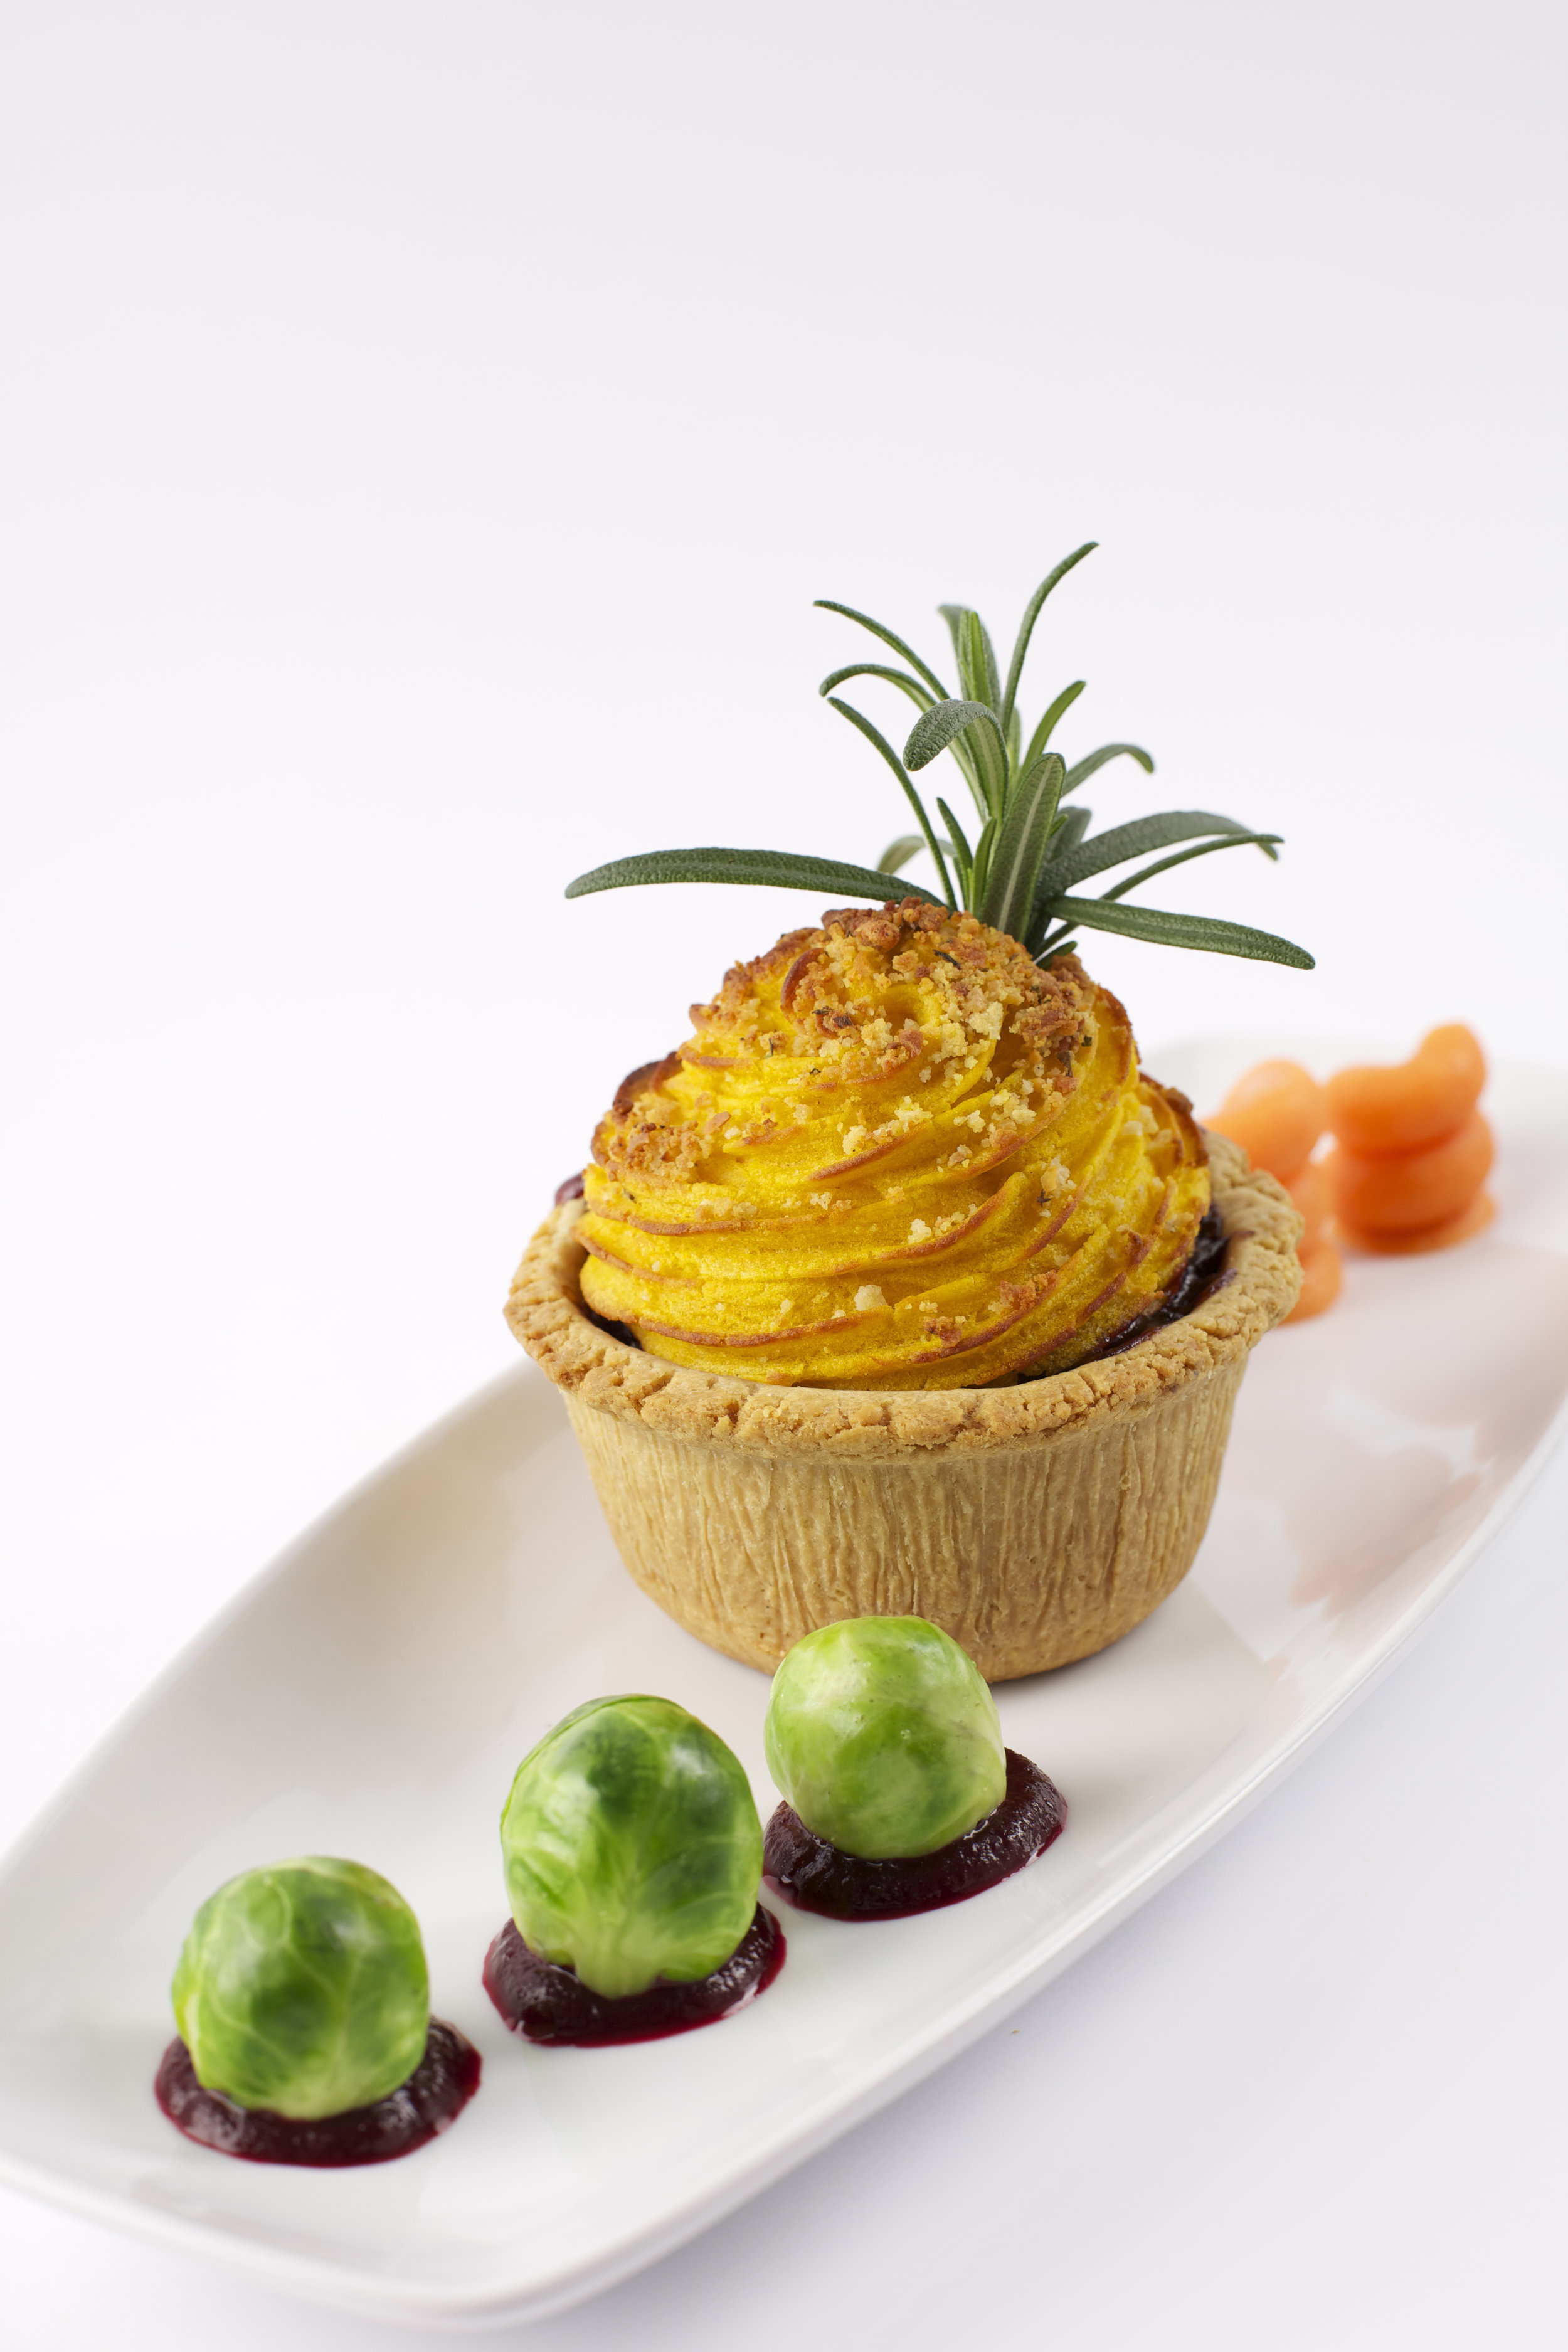 Beetroot & Butternut Squash Cup